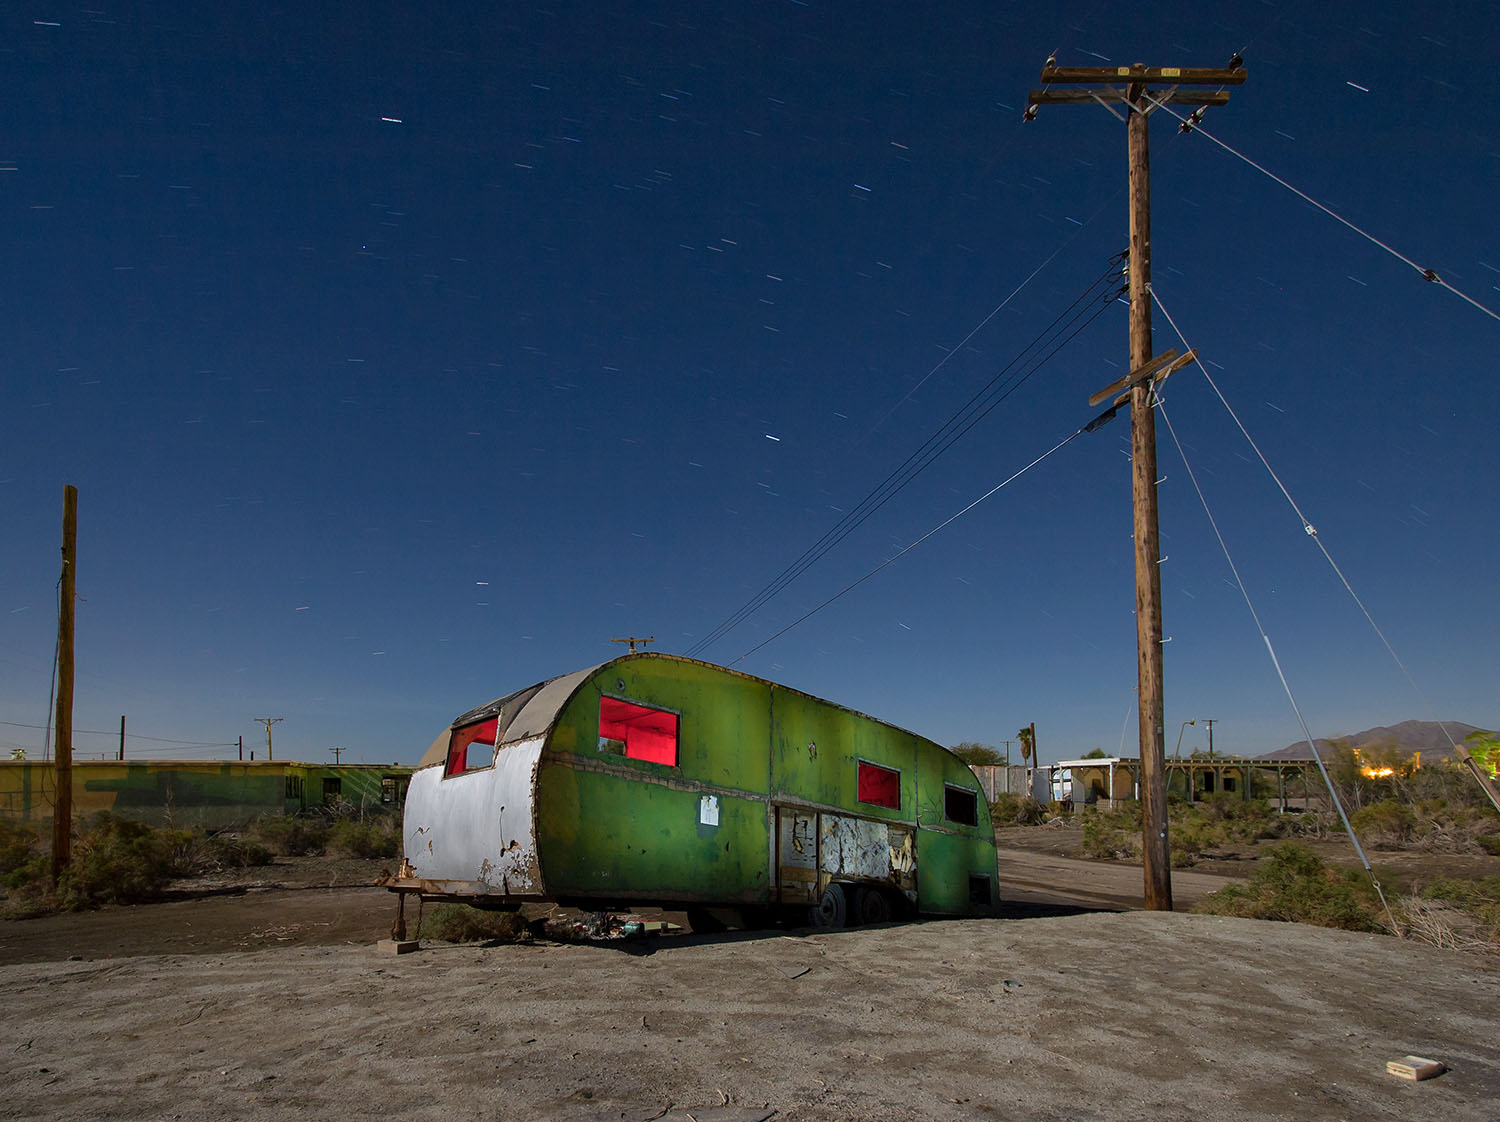 Royal Spartanette, salton sea, caravan, abandoned